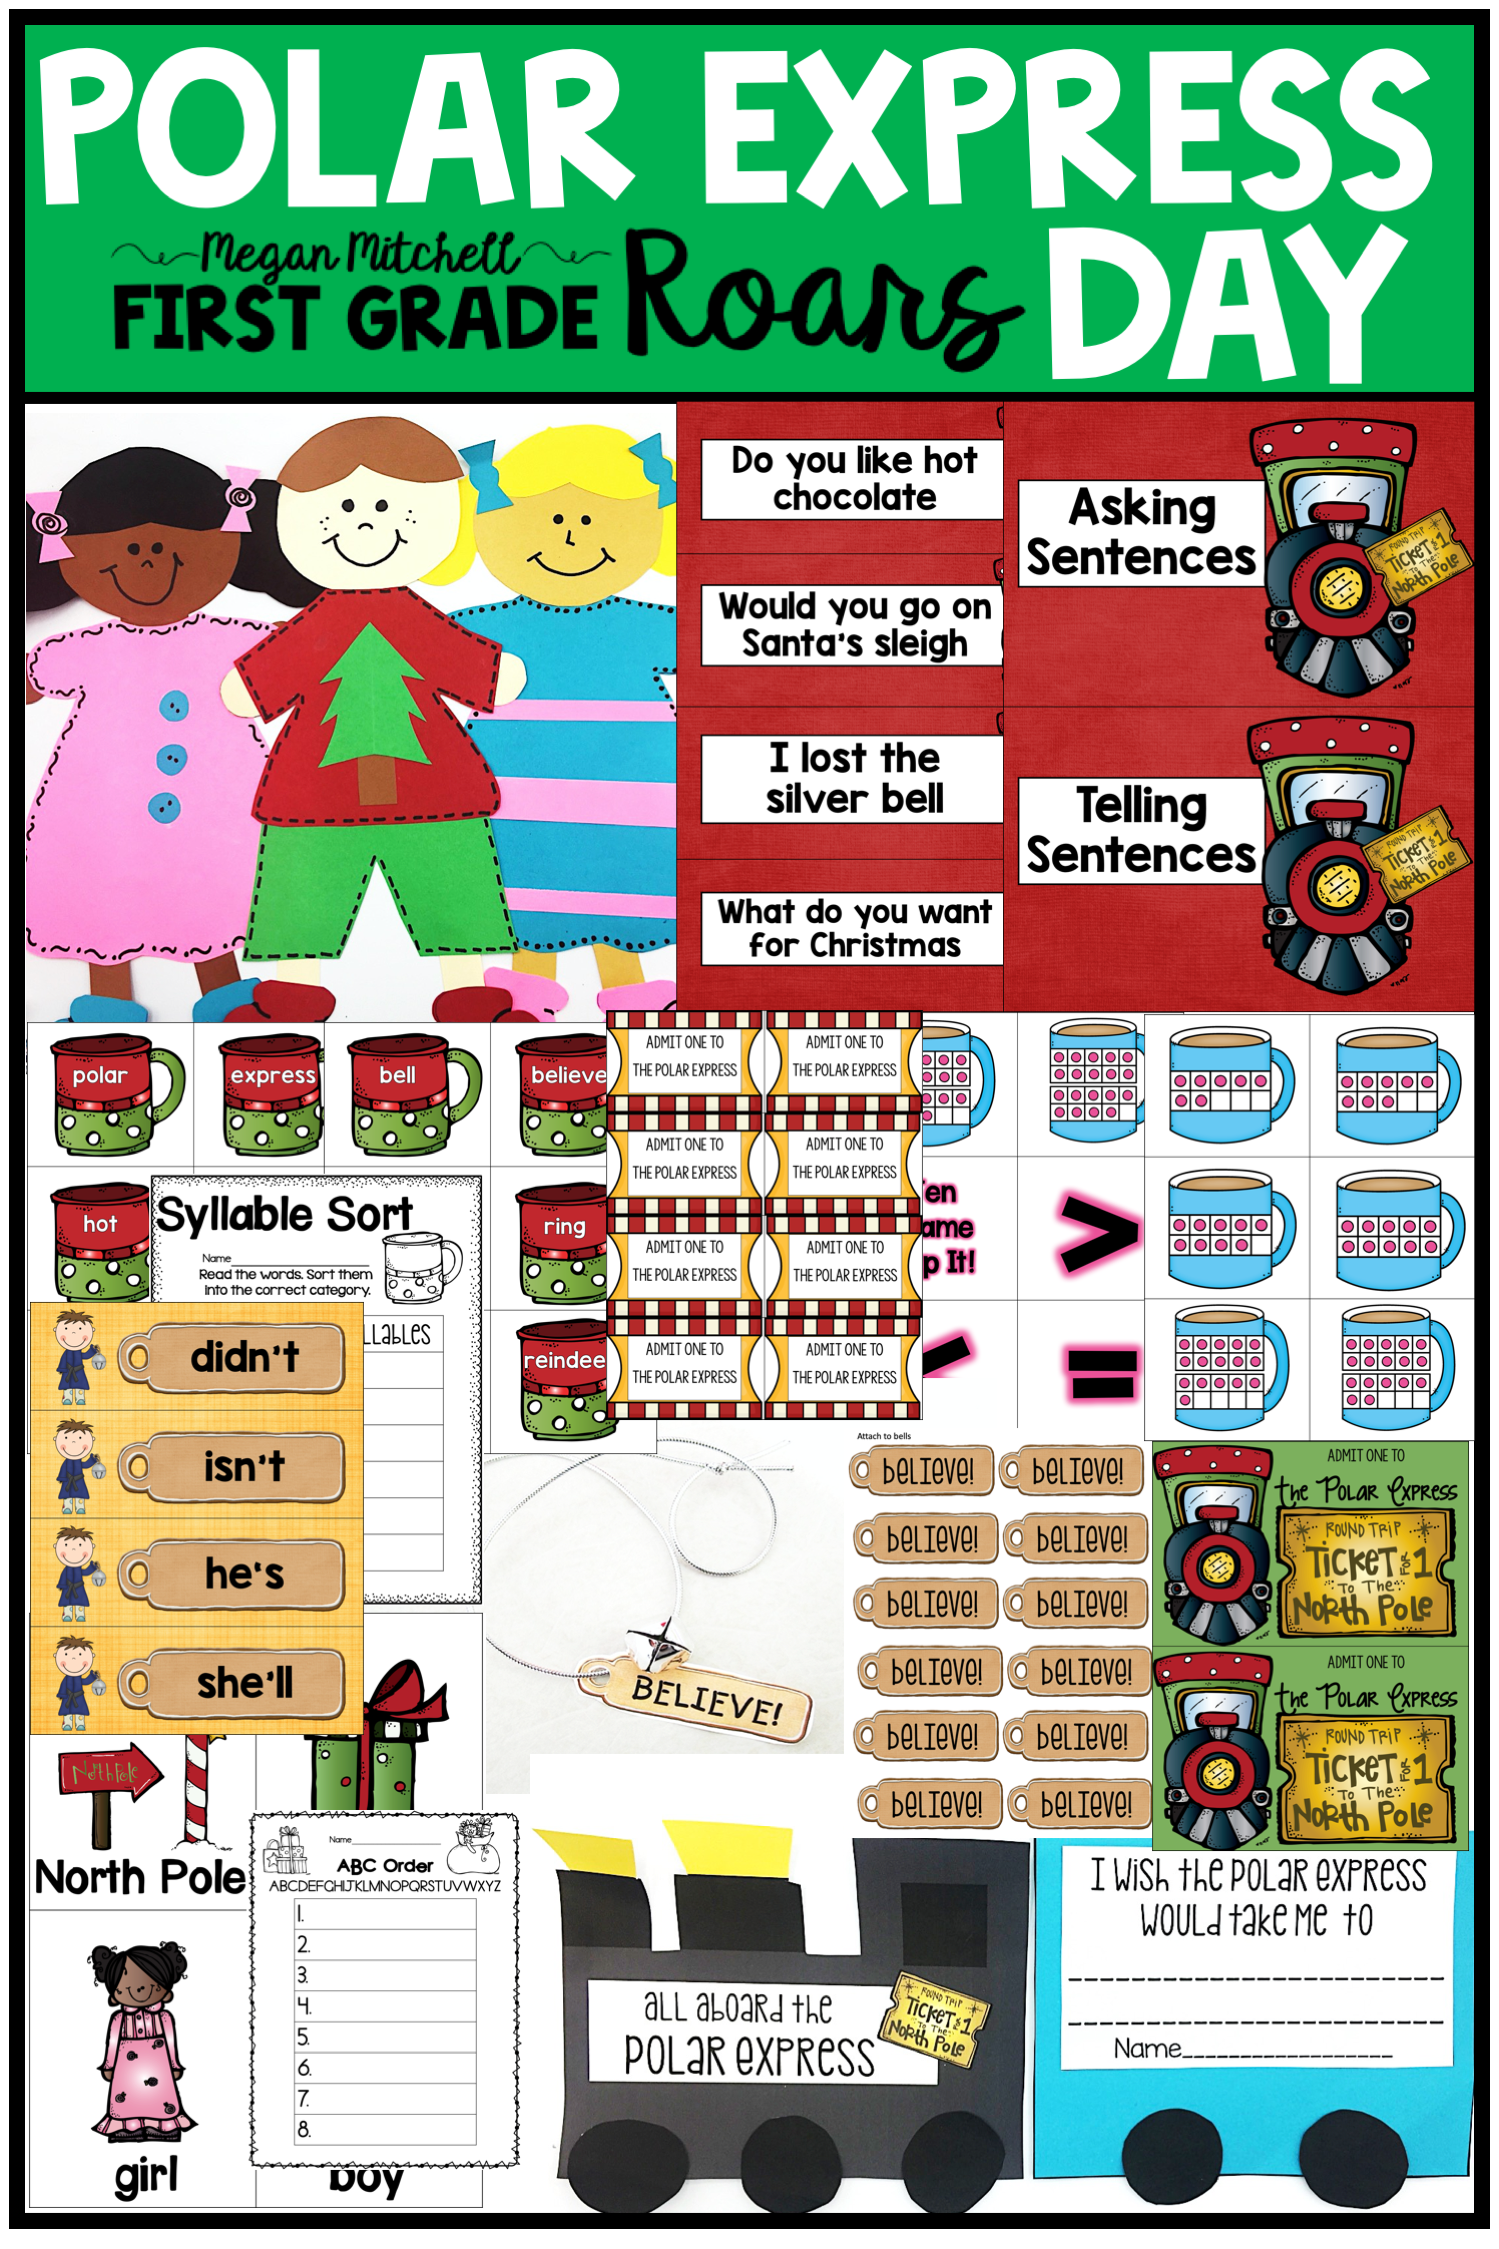 Polar Express Activities With Images